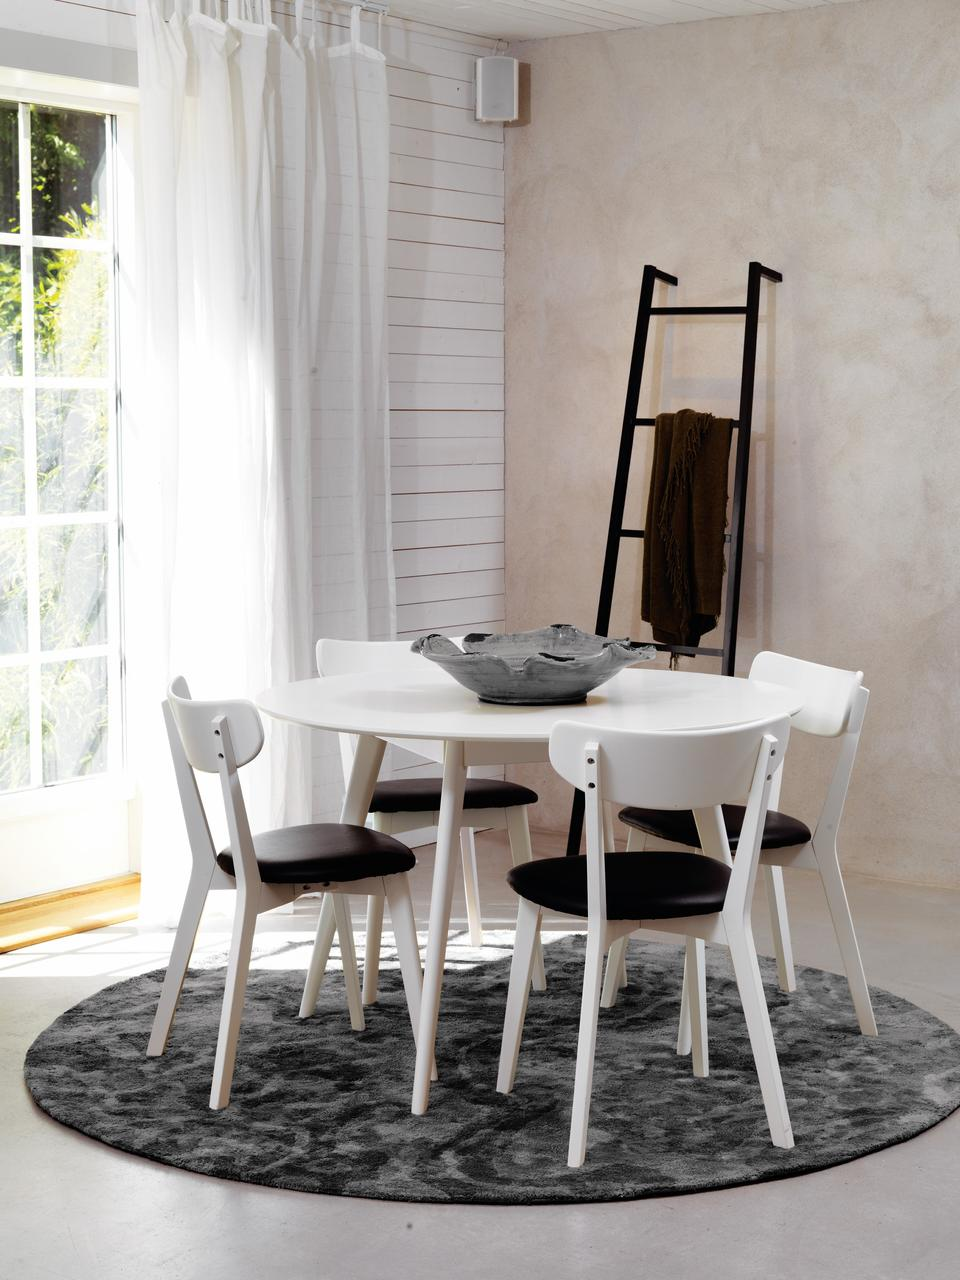 Table ronde en bois Yumi, Blanc